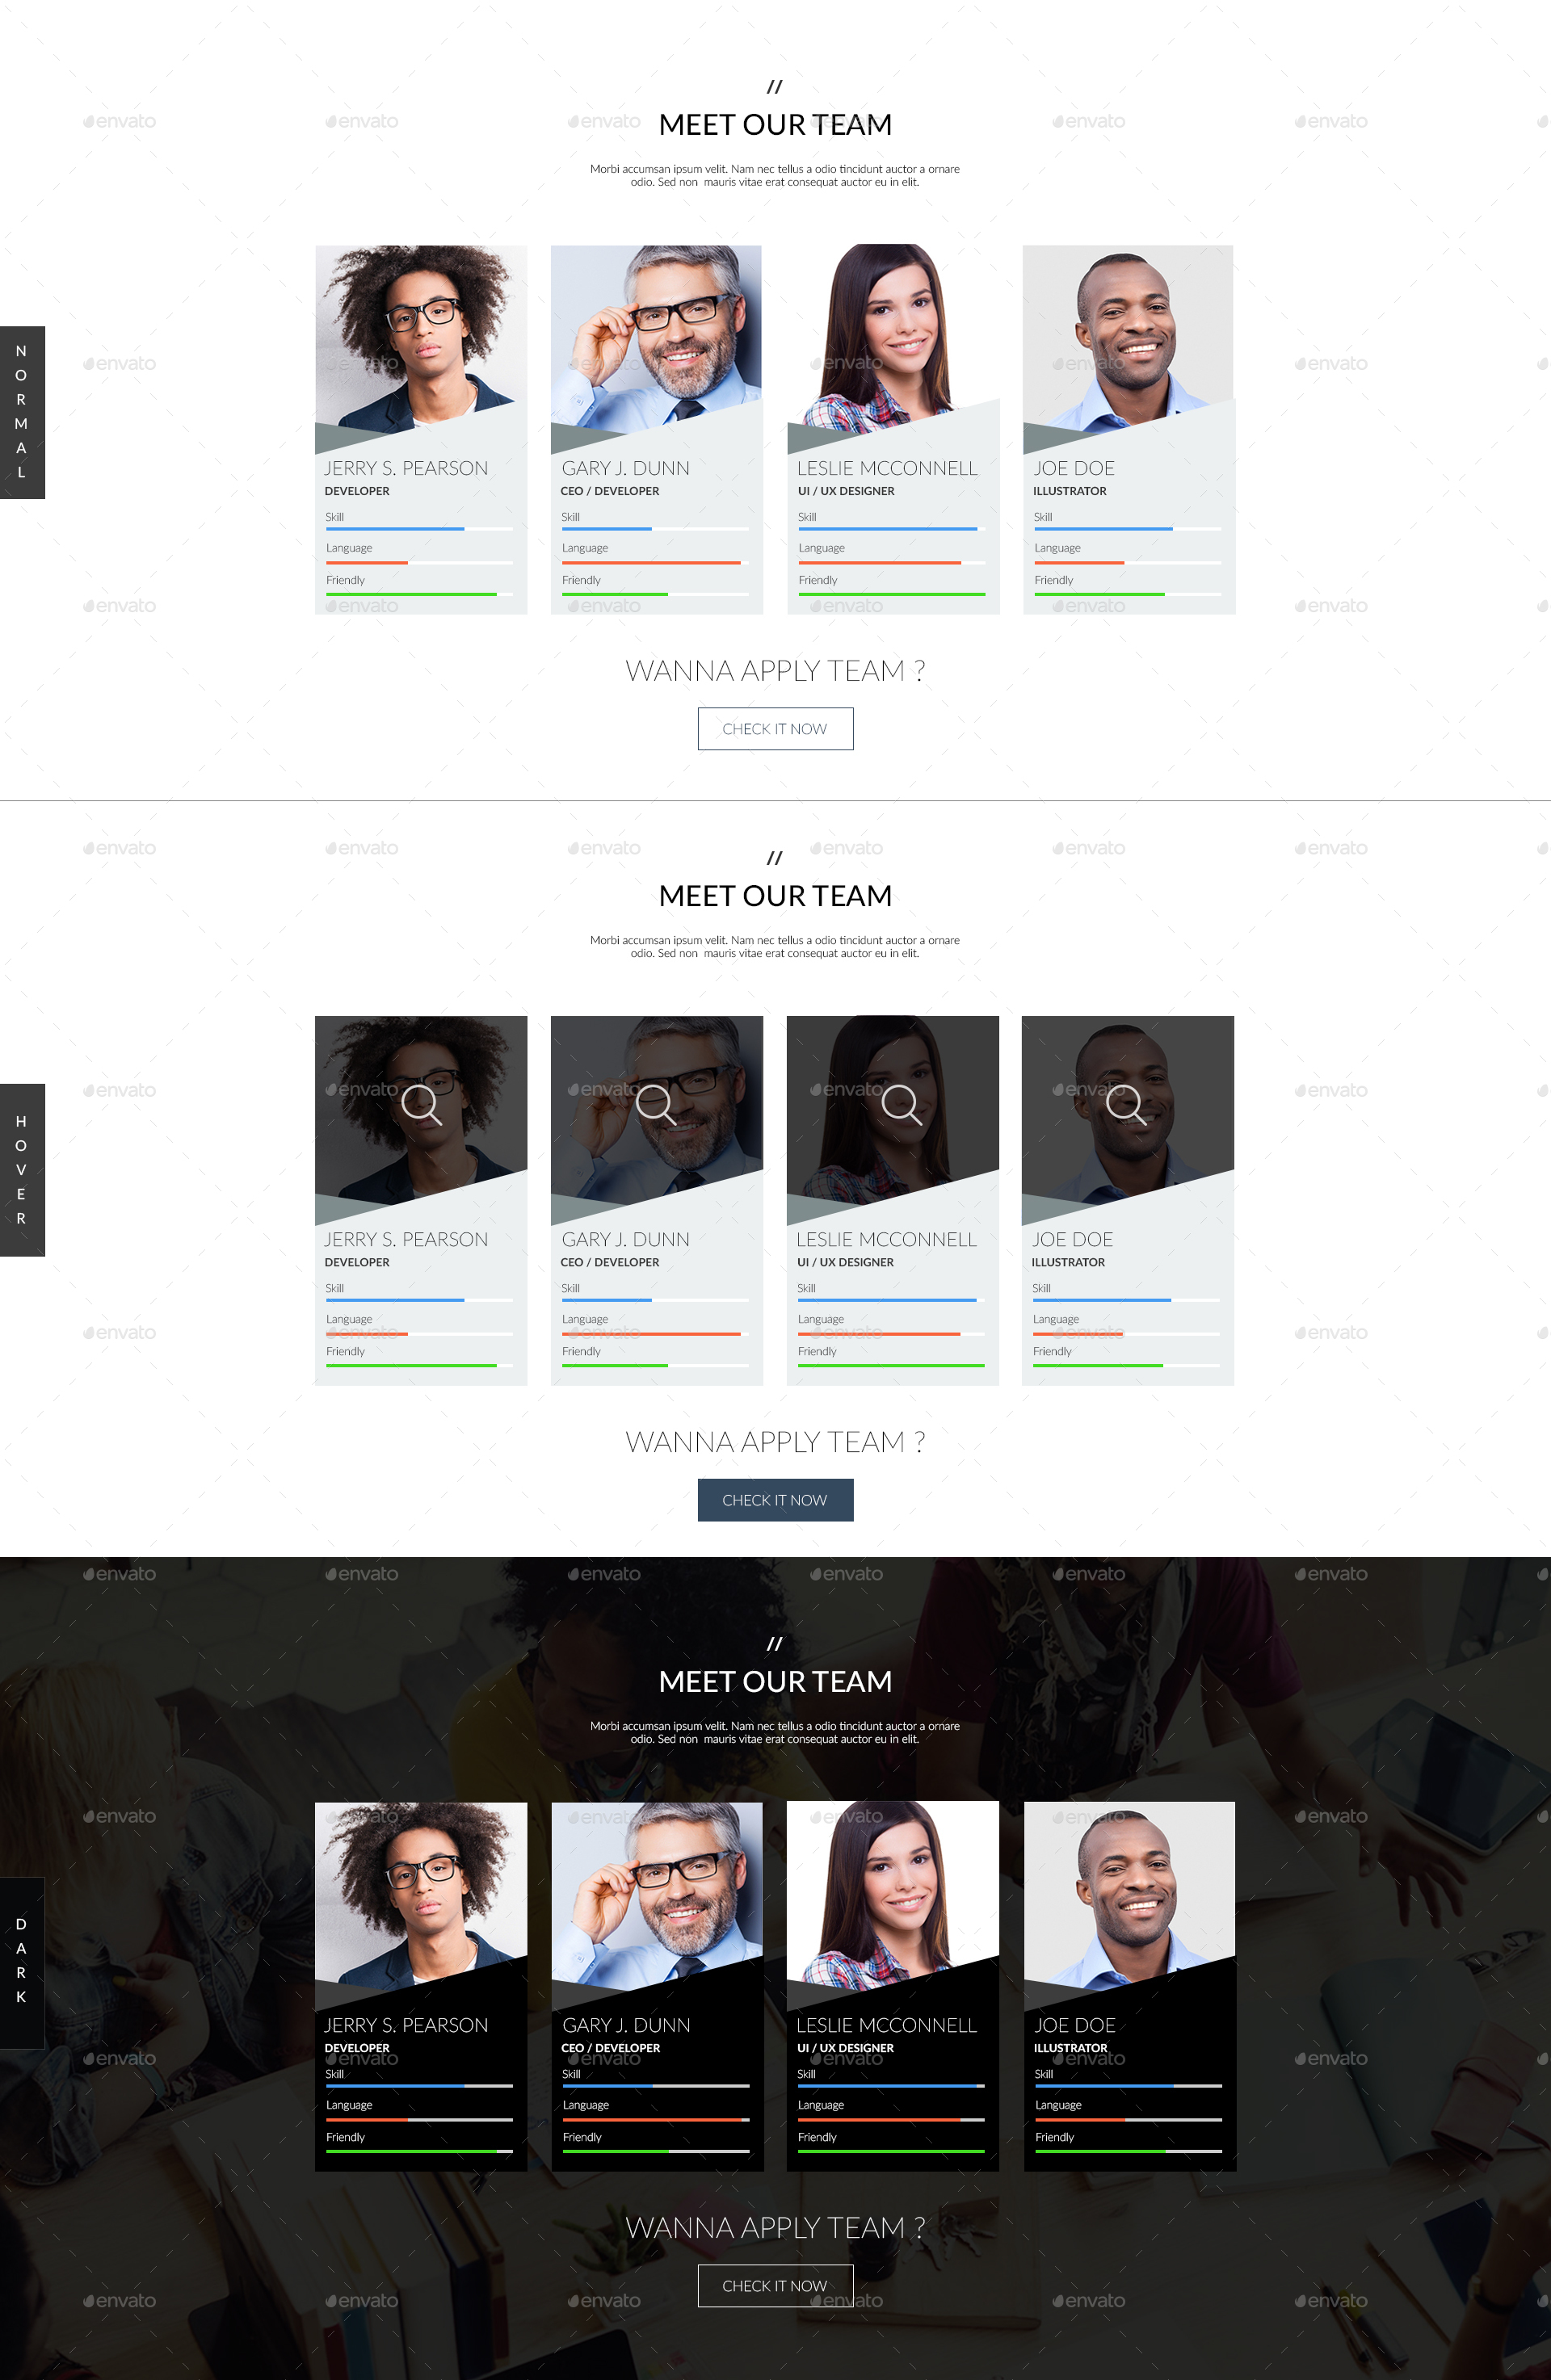 Our Team Designs Psd Template by IamNemo | GraphicRiver